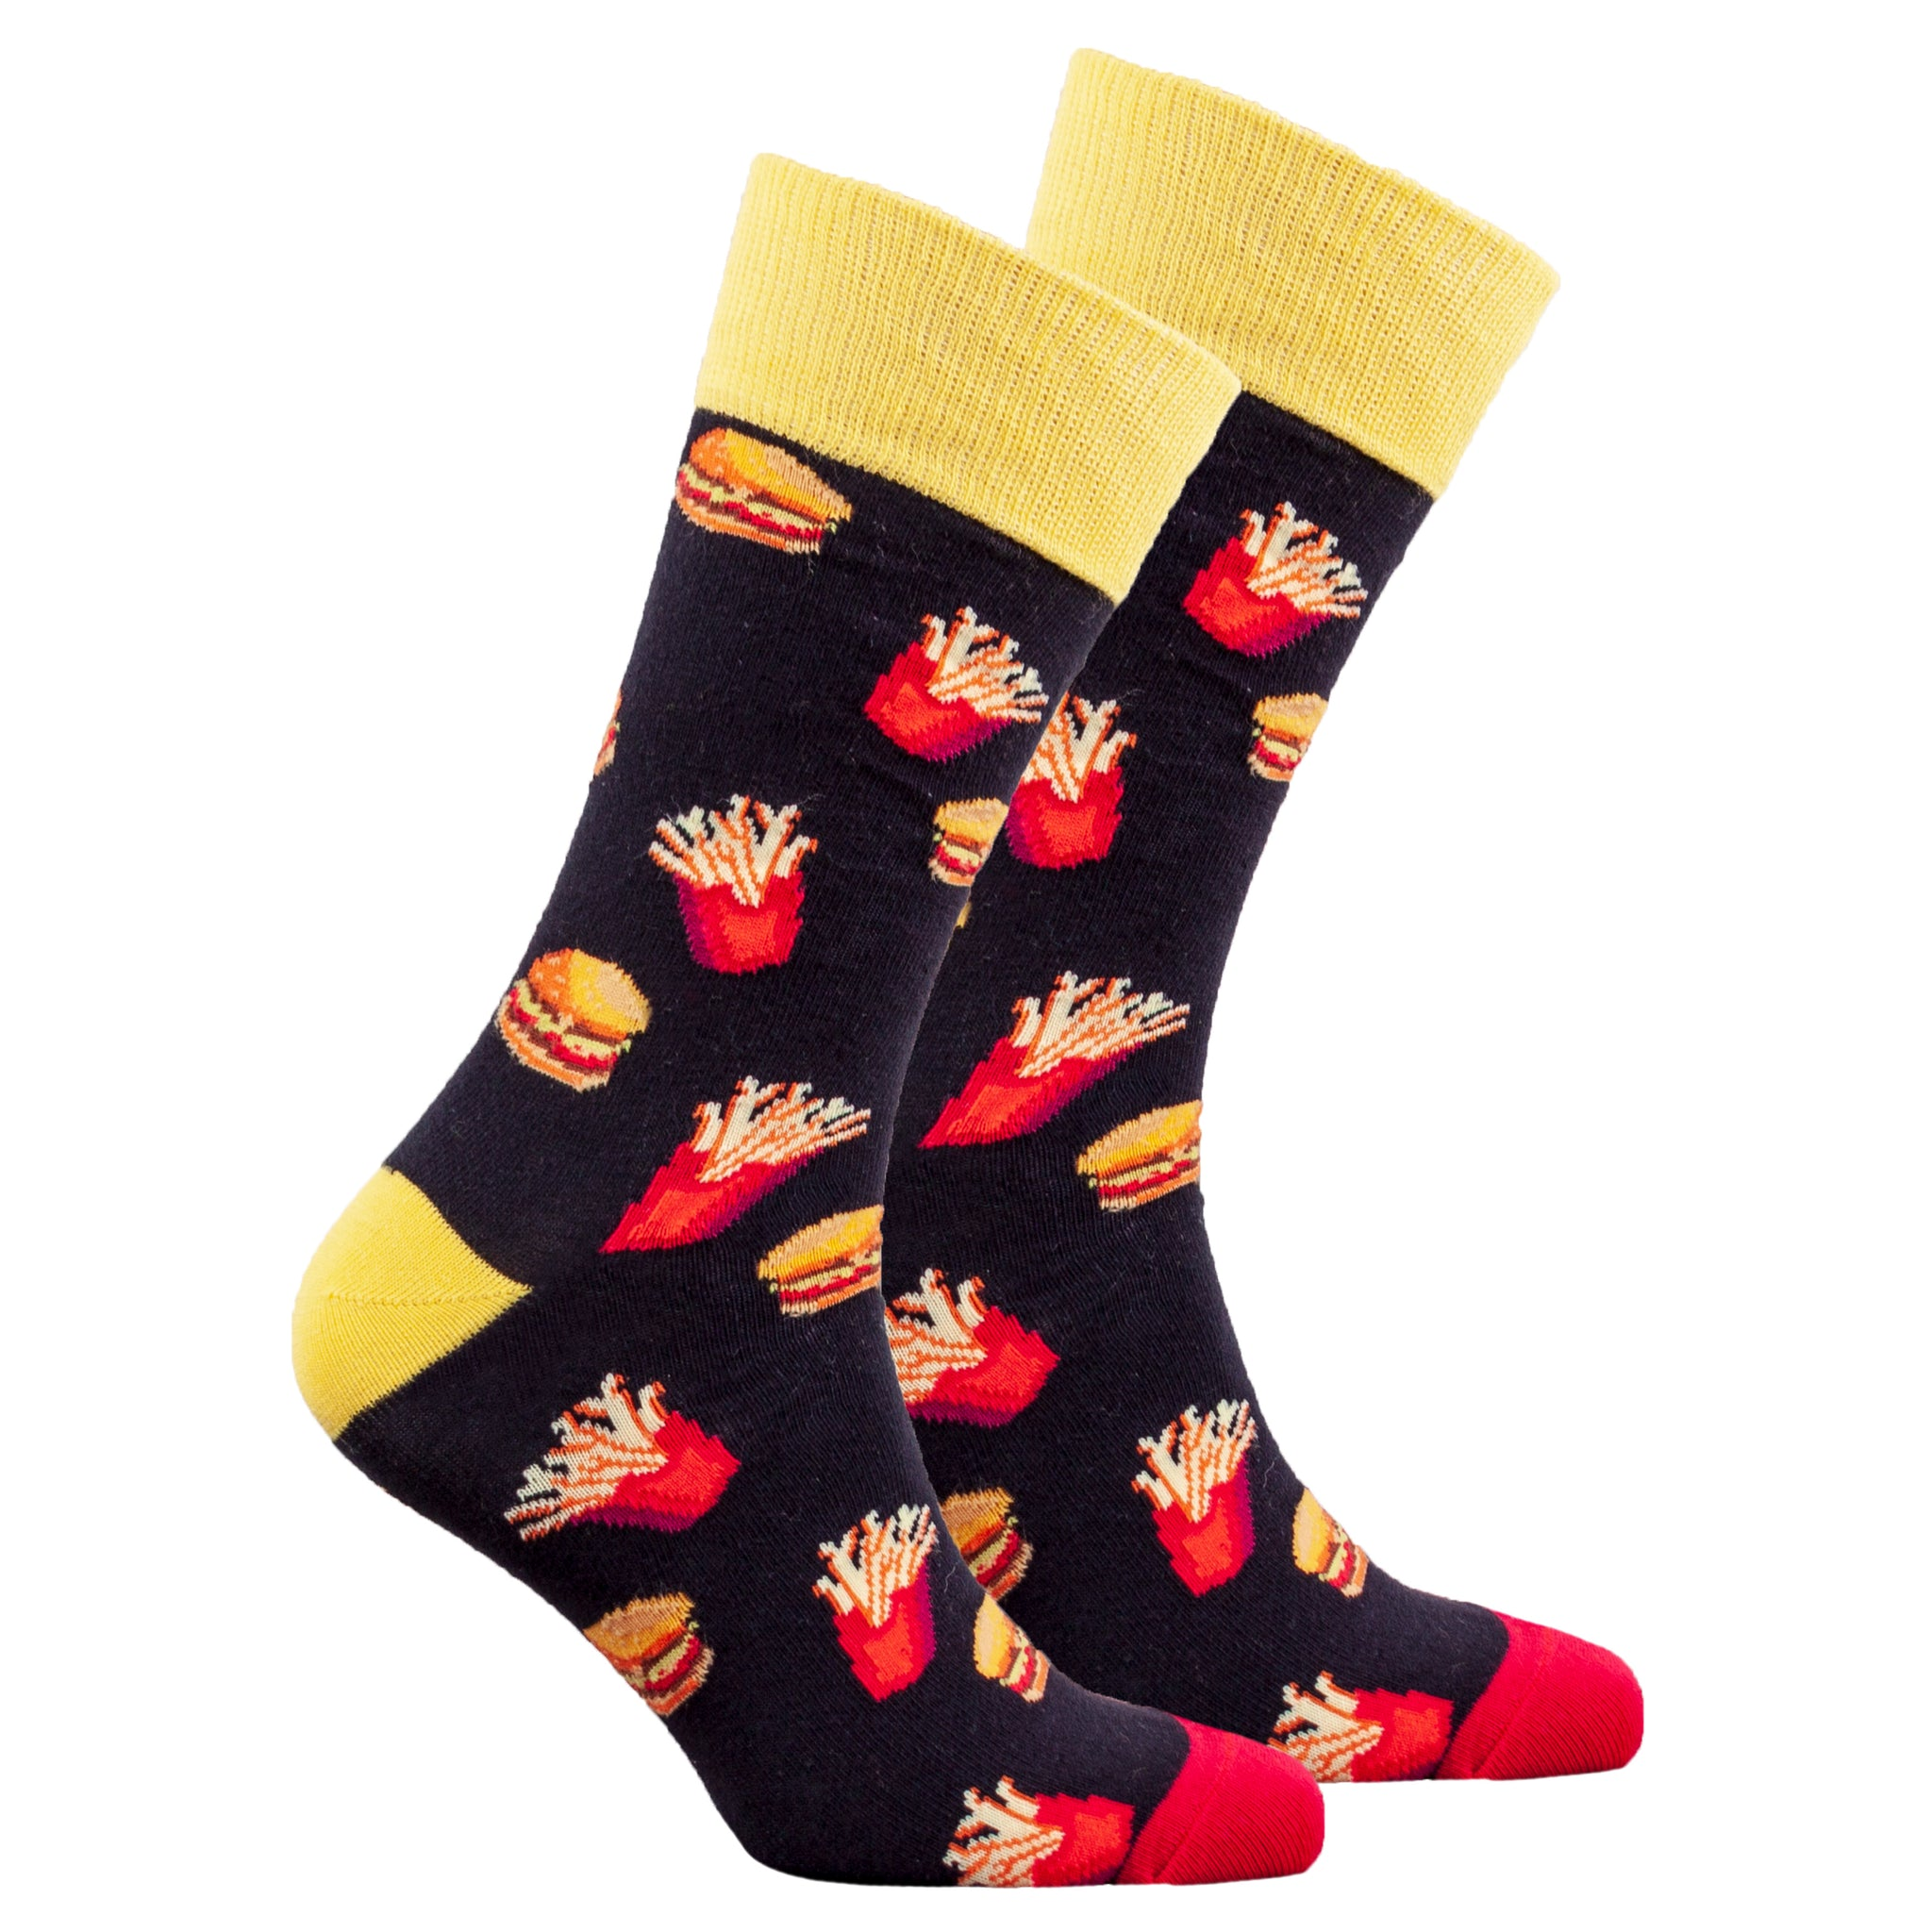 Men's Burger & Fries Socks